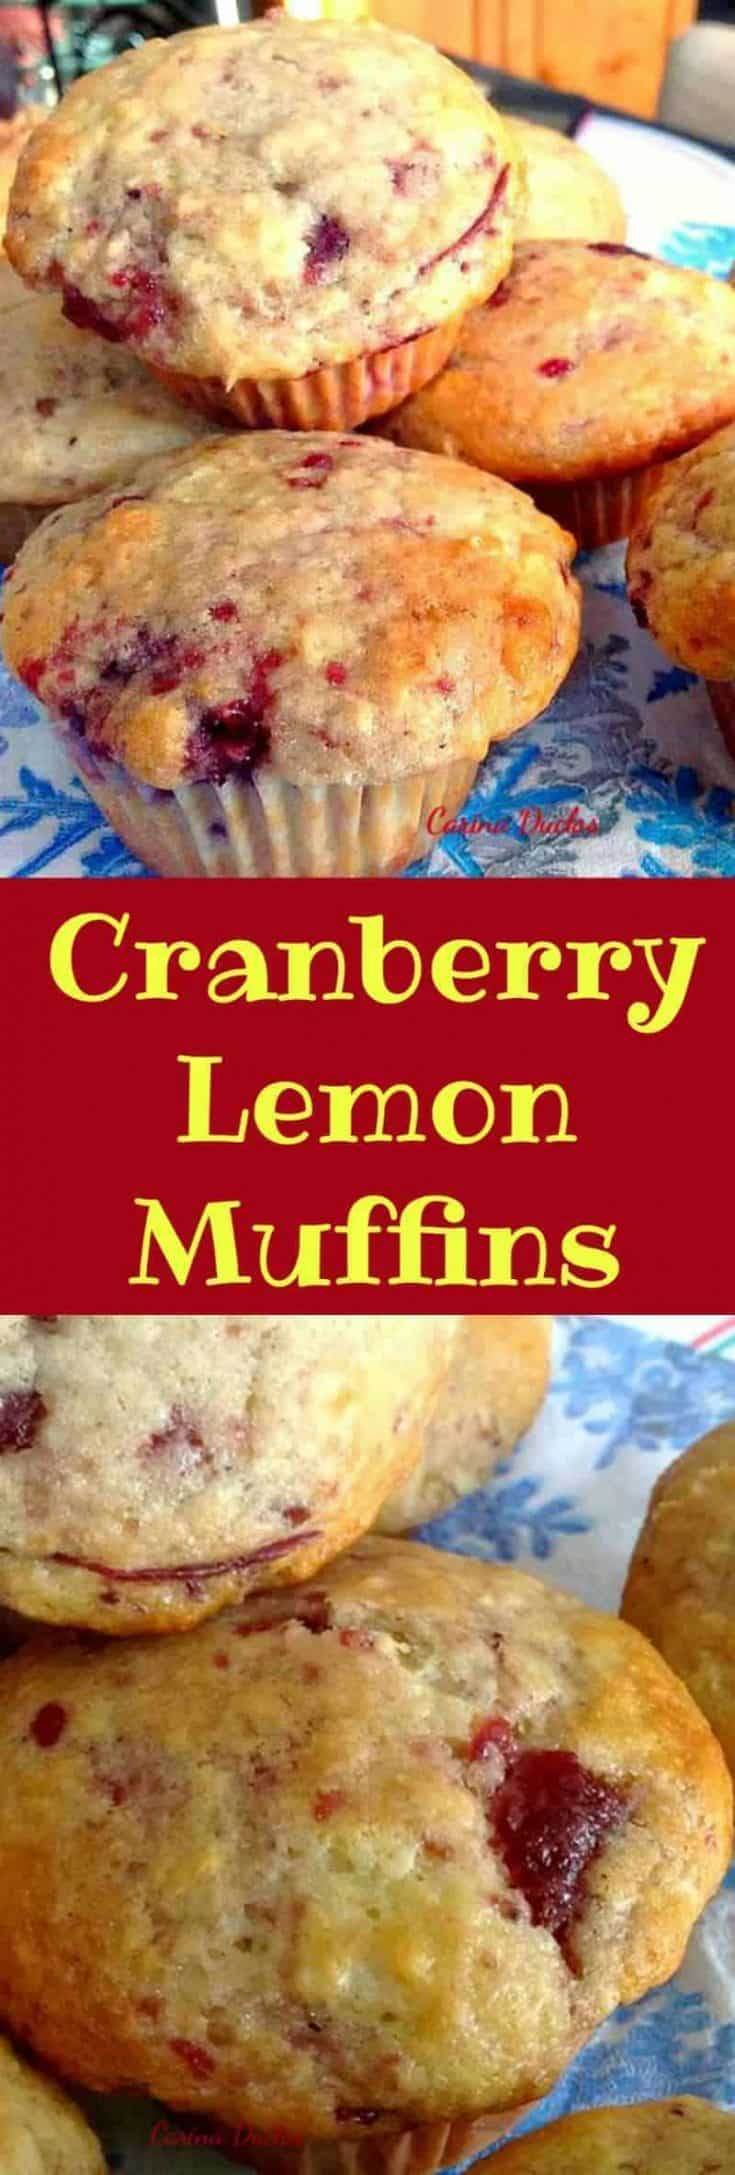 Cranberry Lemon Muffins. Incredibly easy recipe and of course very tasty!